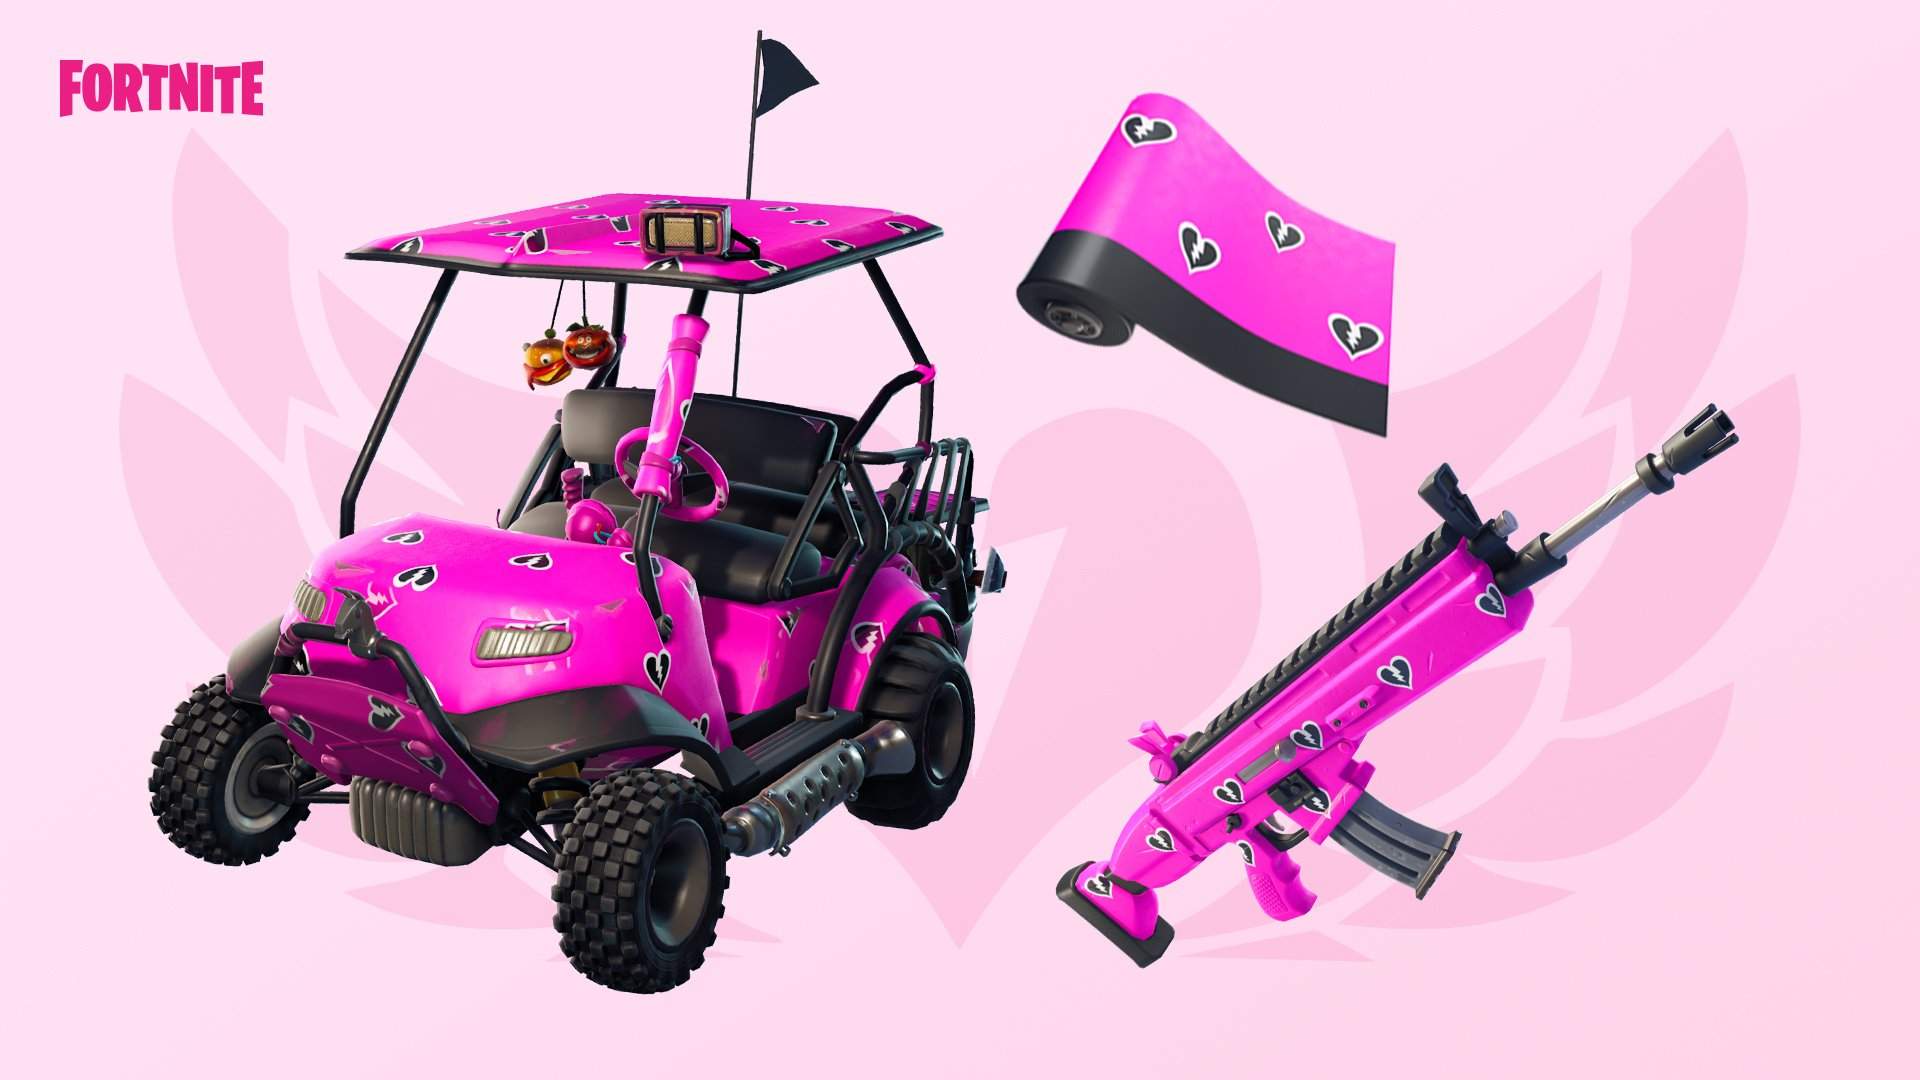 Fortnite Valentine's Event Announced, Features New Challenges, Rewards, And More class=